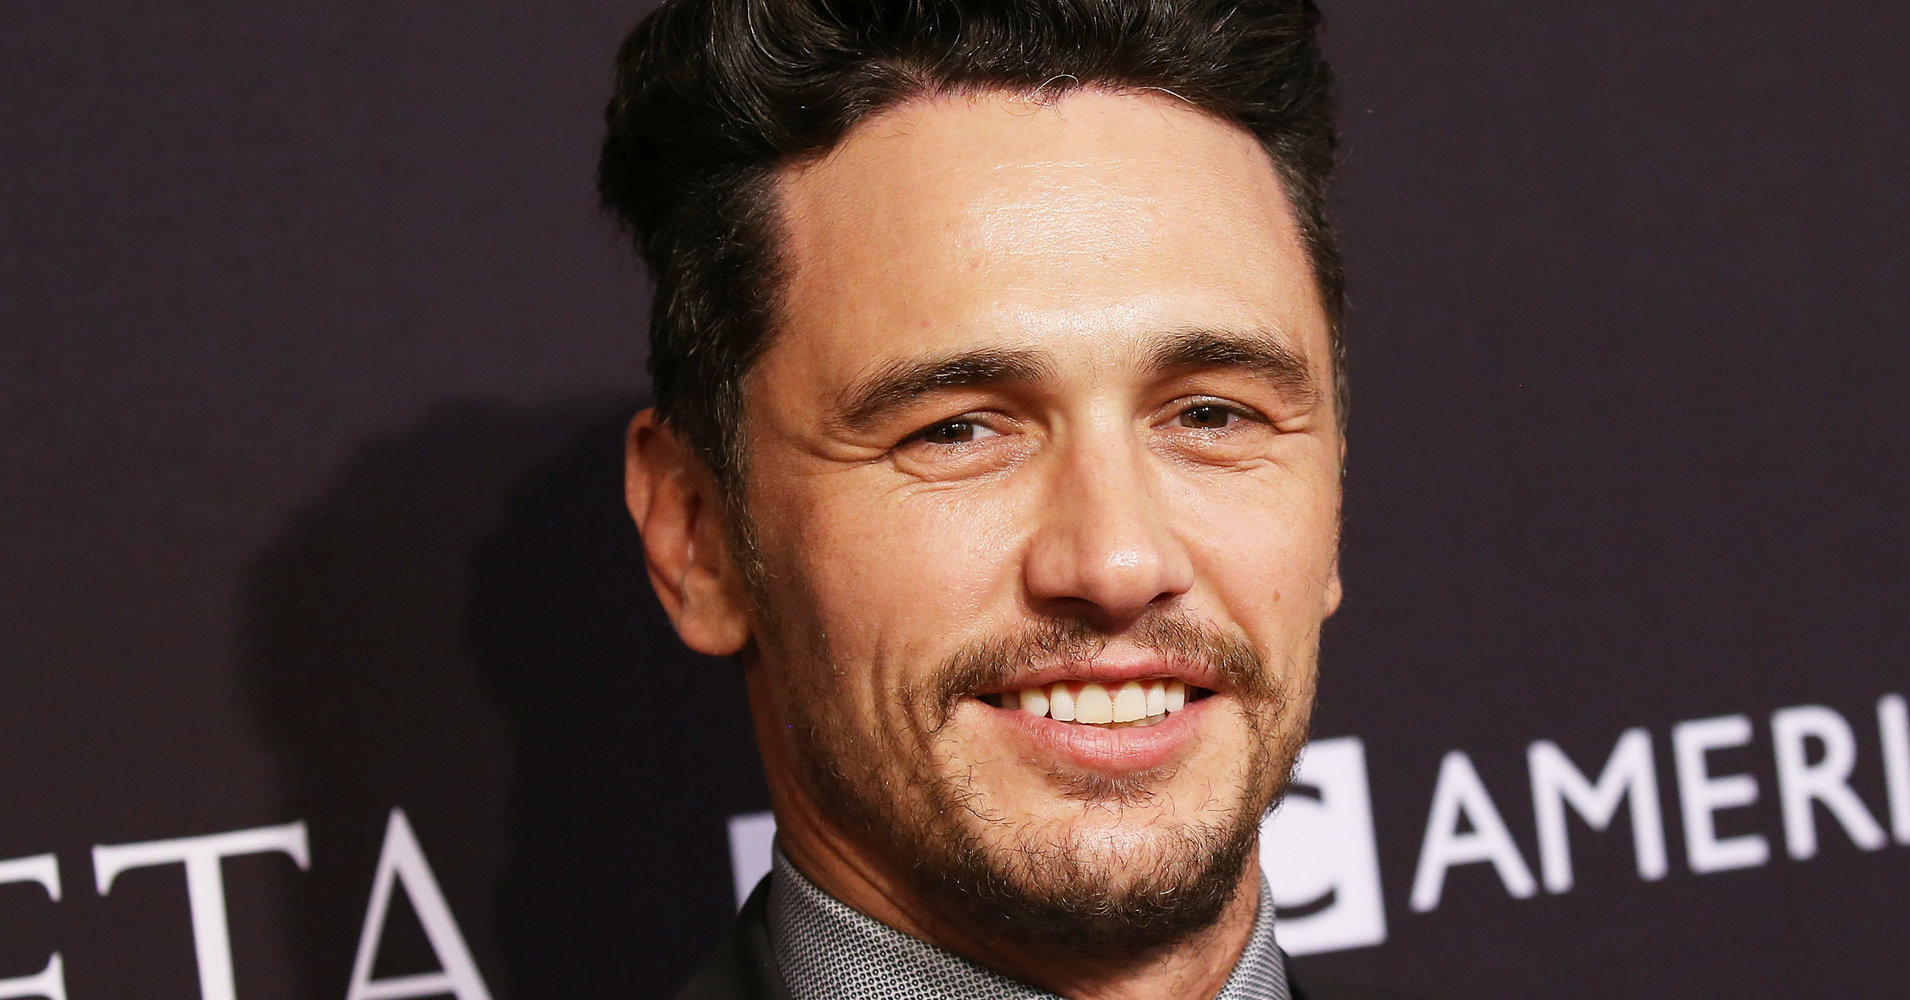 James Franco Was Edited Out Of Vanity Fair's Hollywood Issue Cover